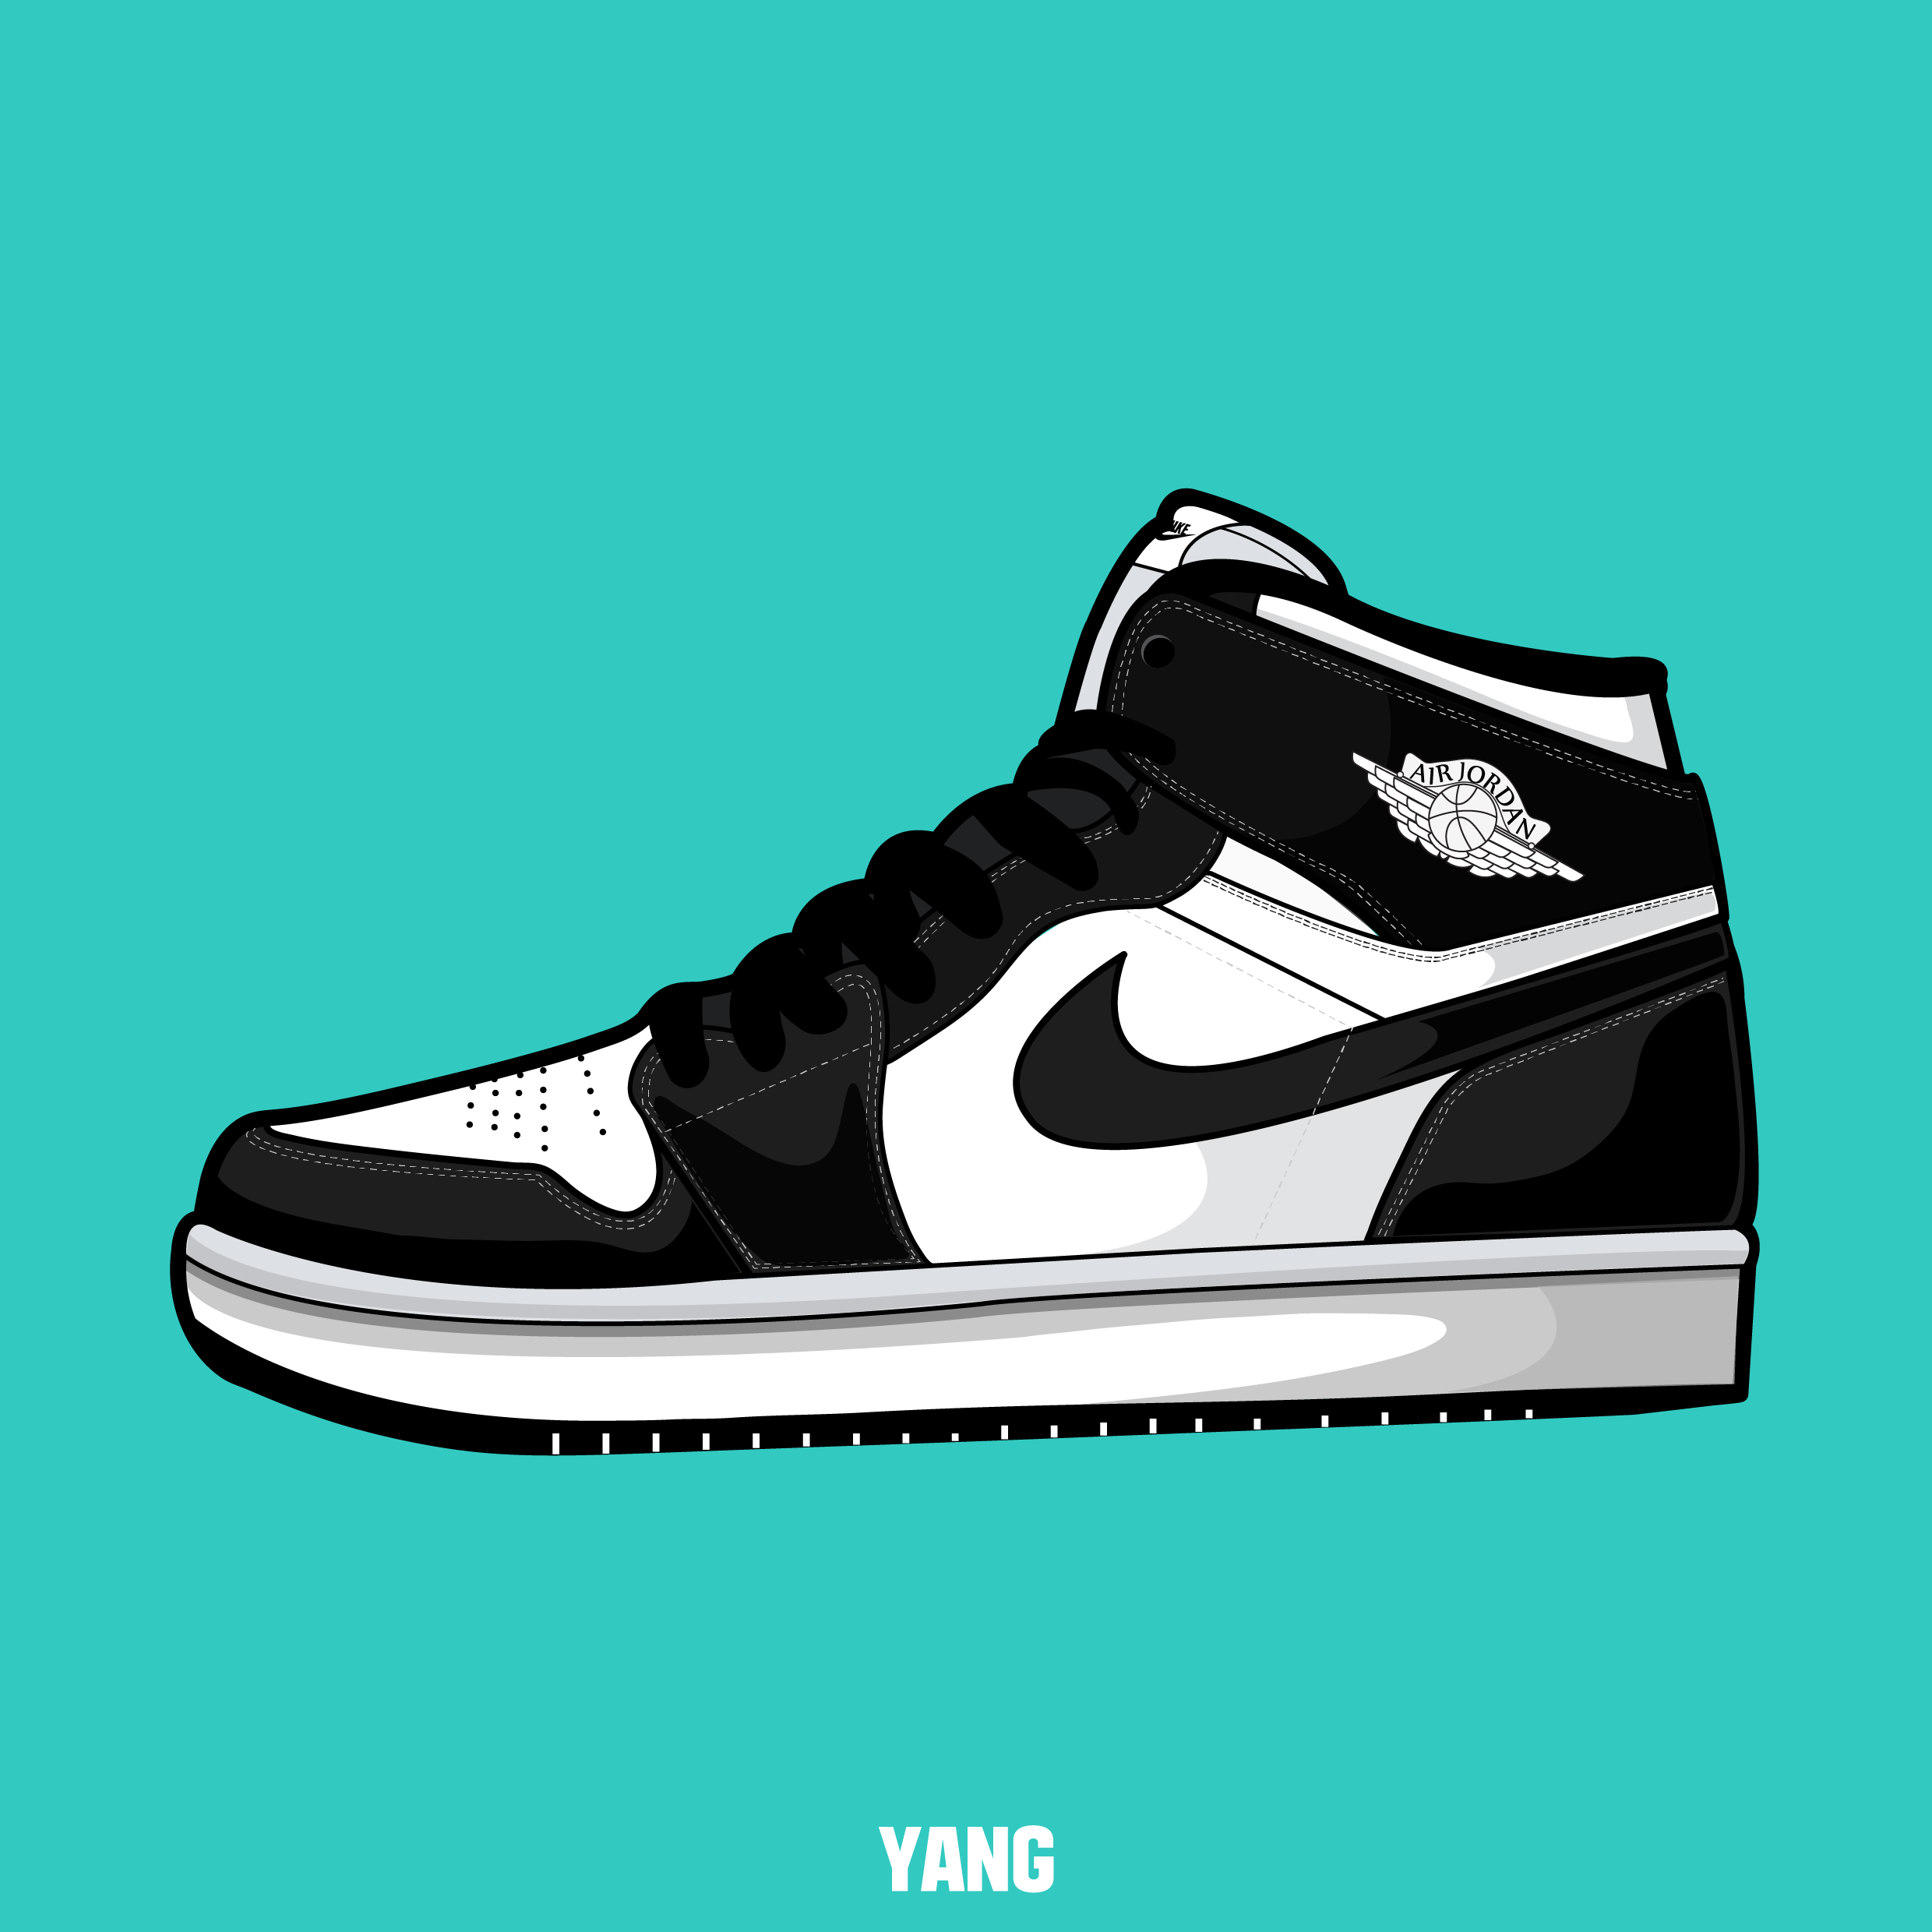 Nike Air Jordan 1 Liants Concepteur